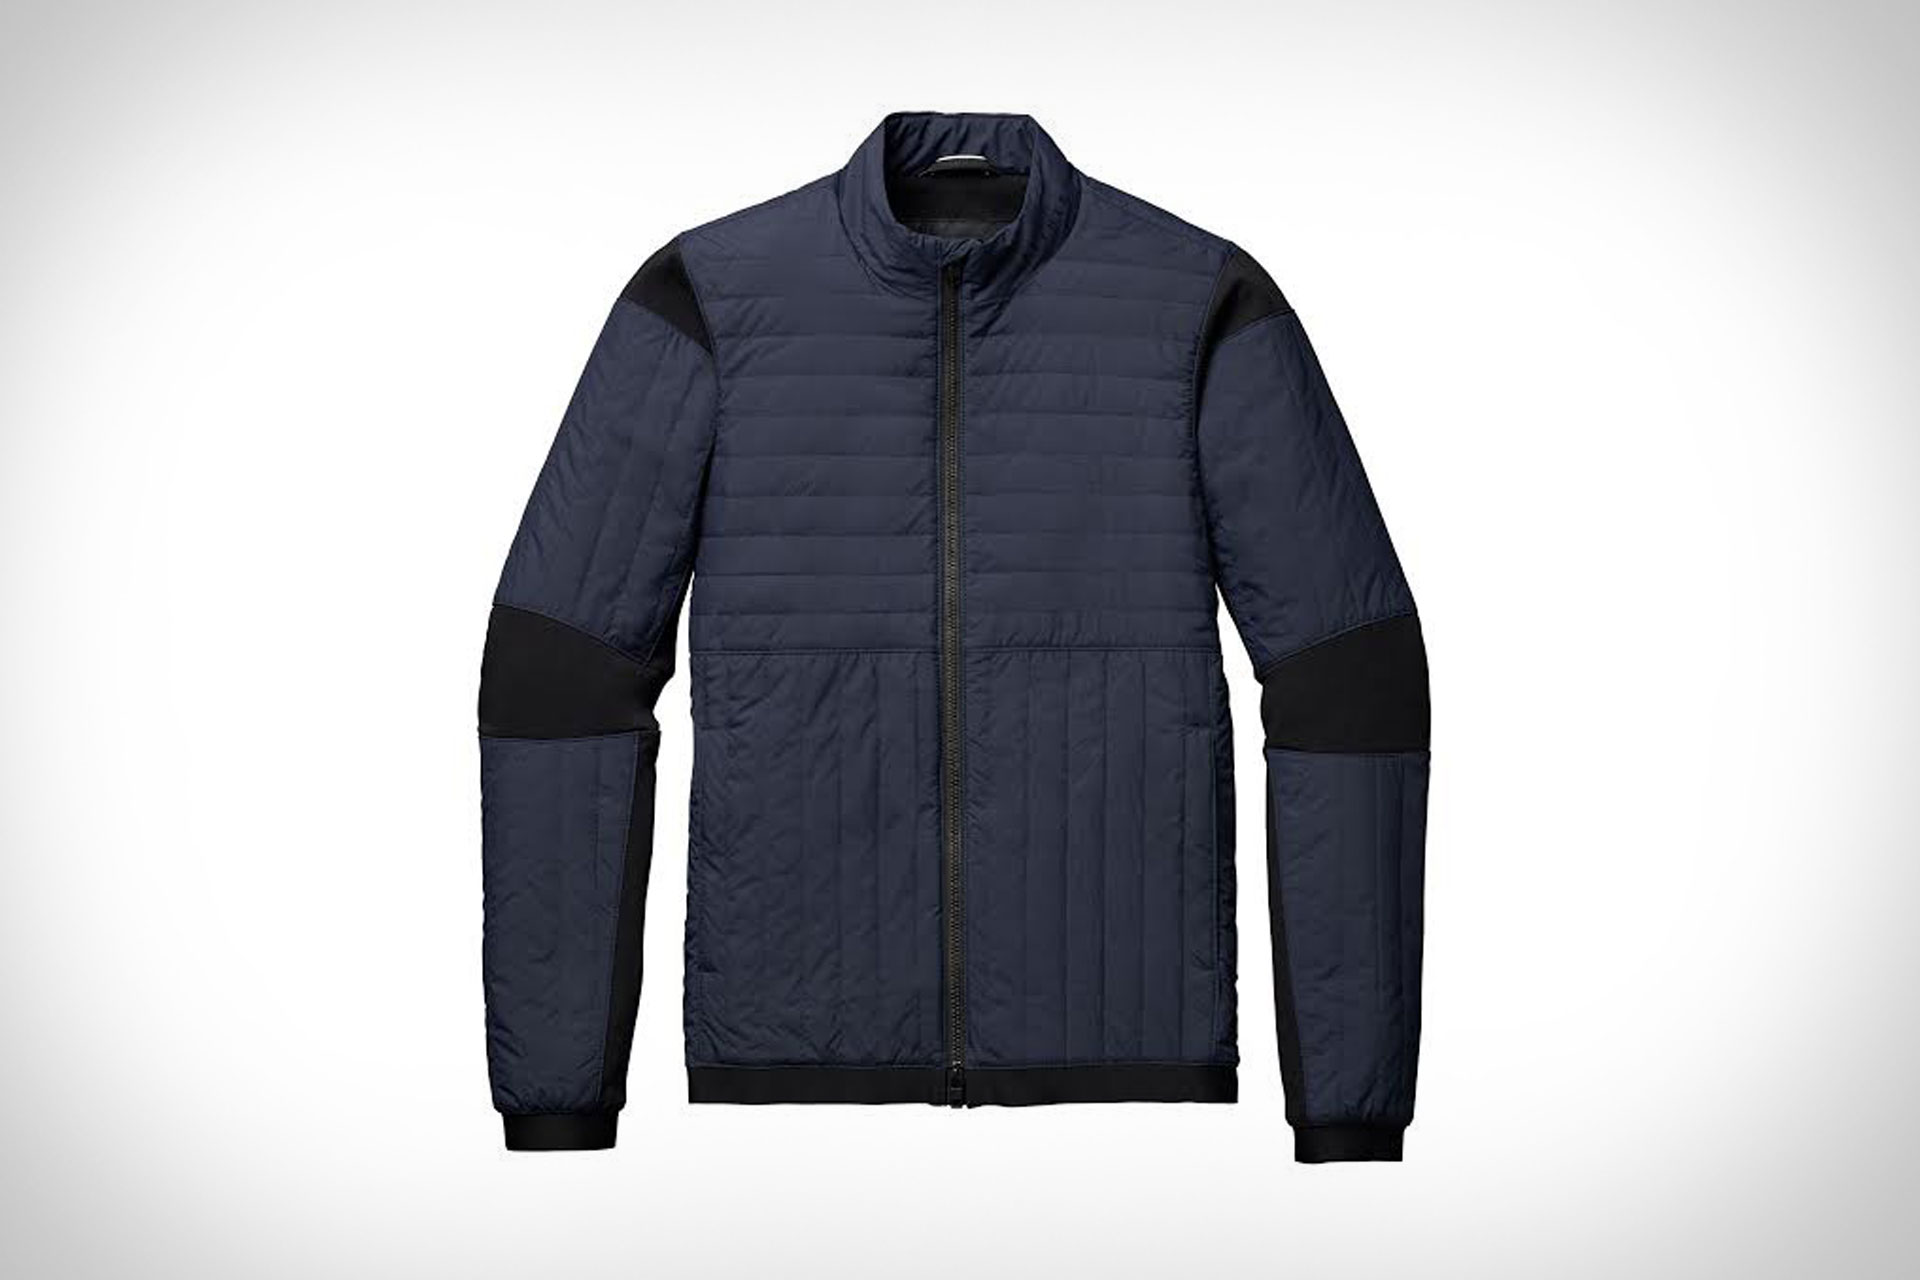 Aether Reprise Jacket